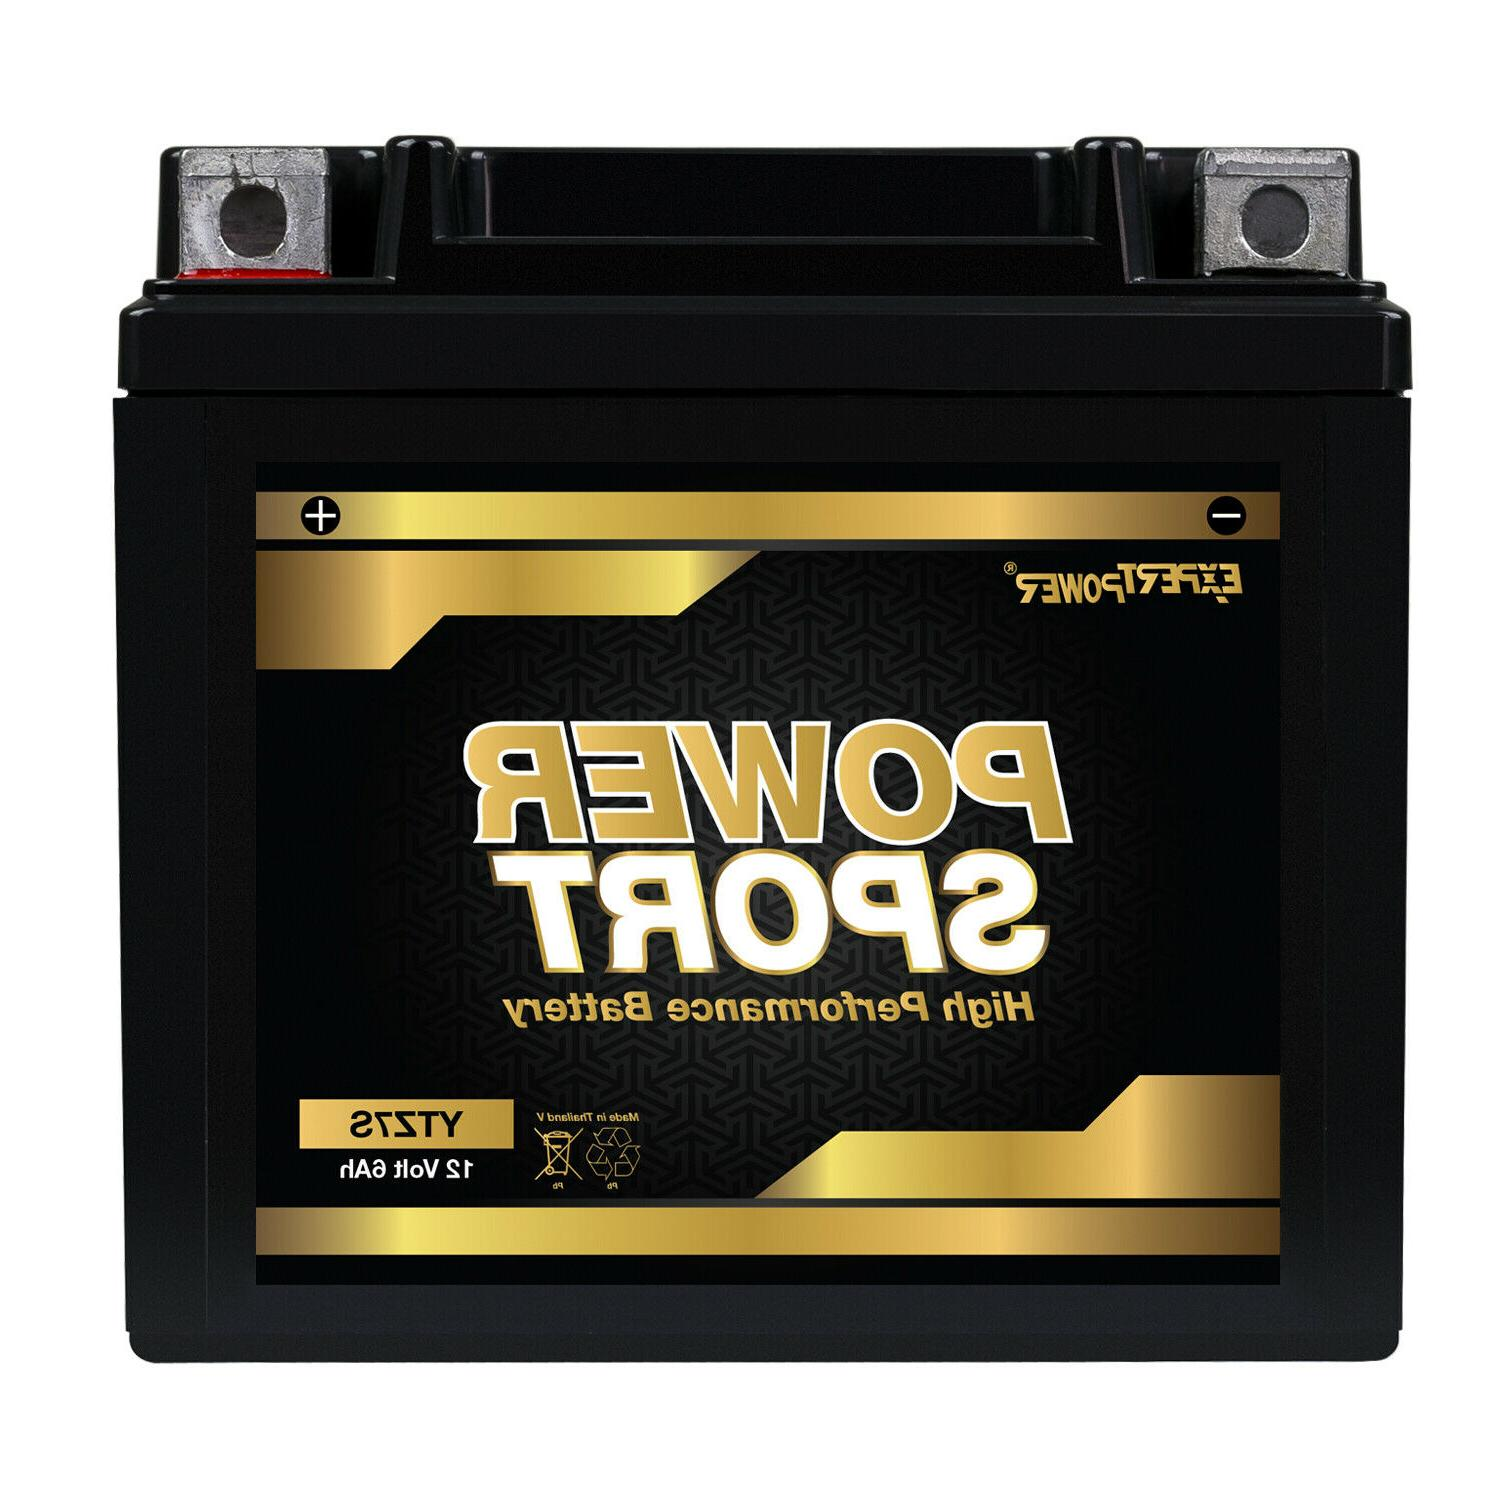 12v 6ah battery for atv snowmobile mowers